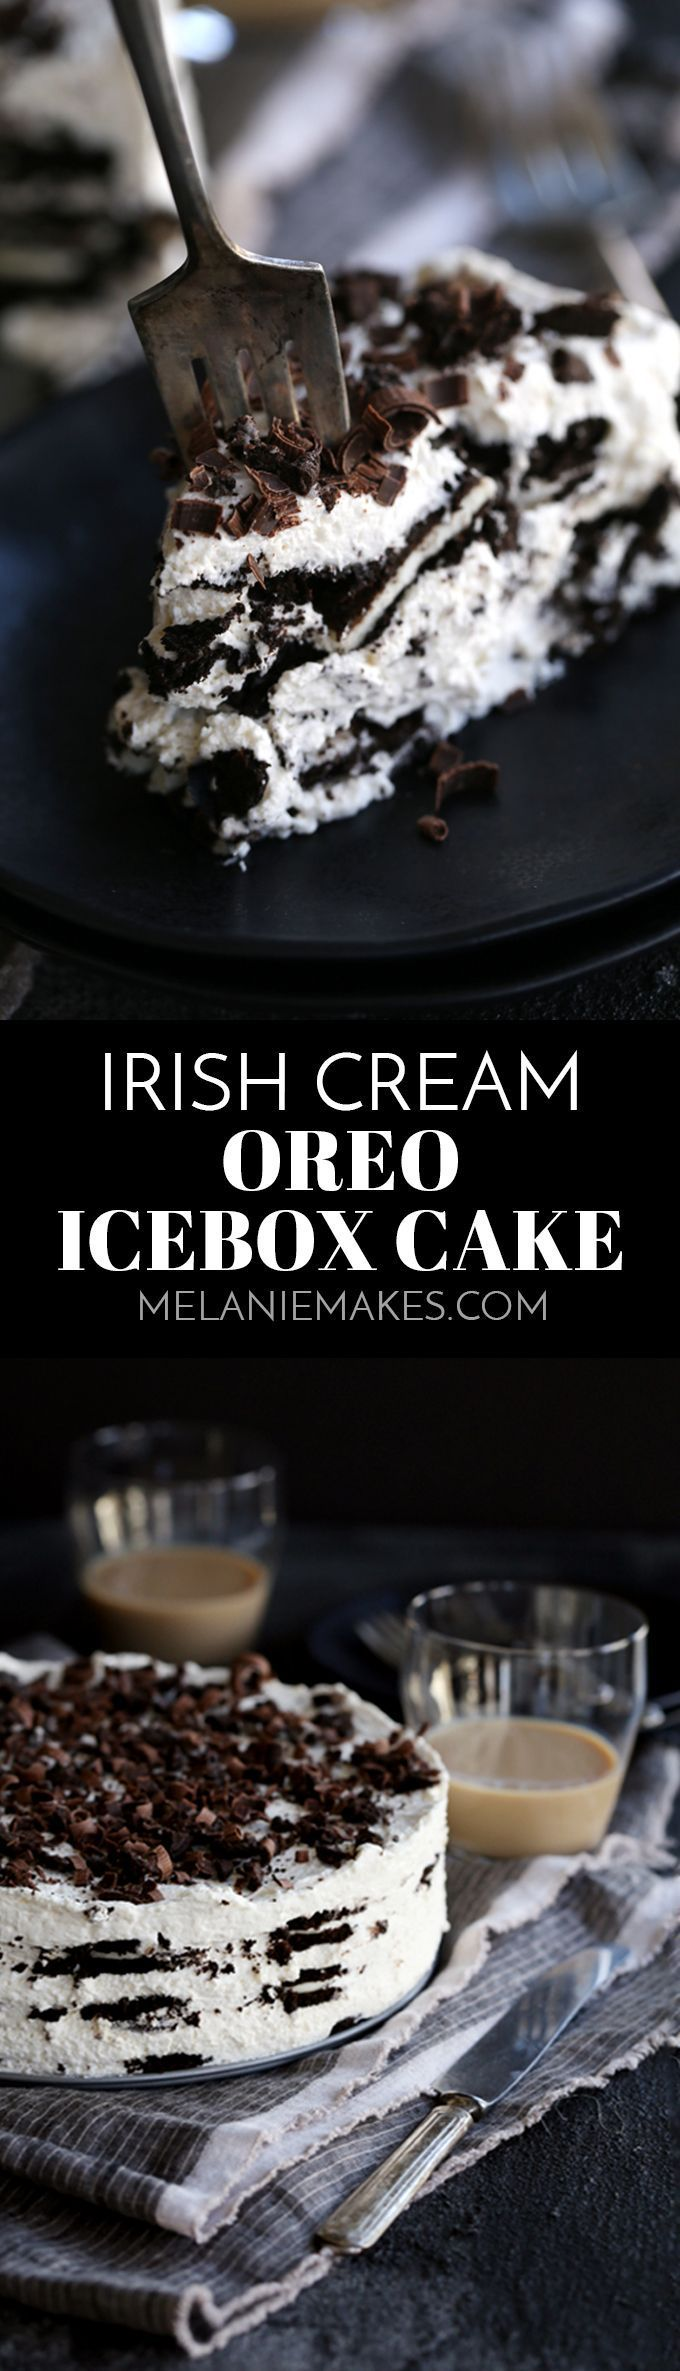 This six ingredient Irish Cream Oreo Ice Box Cake is likely one of the easiest desserts you'll ever make and absolutely perfect to enjoy for St. Patrick's Day. Layers of Oreos and Irish cream spiked mascarpone whipped cream make up this dreamy sweet treat.